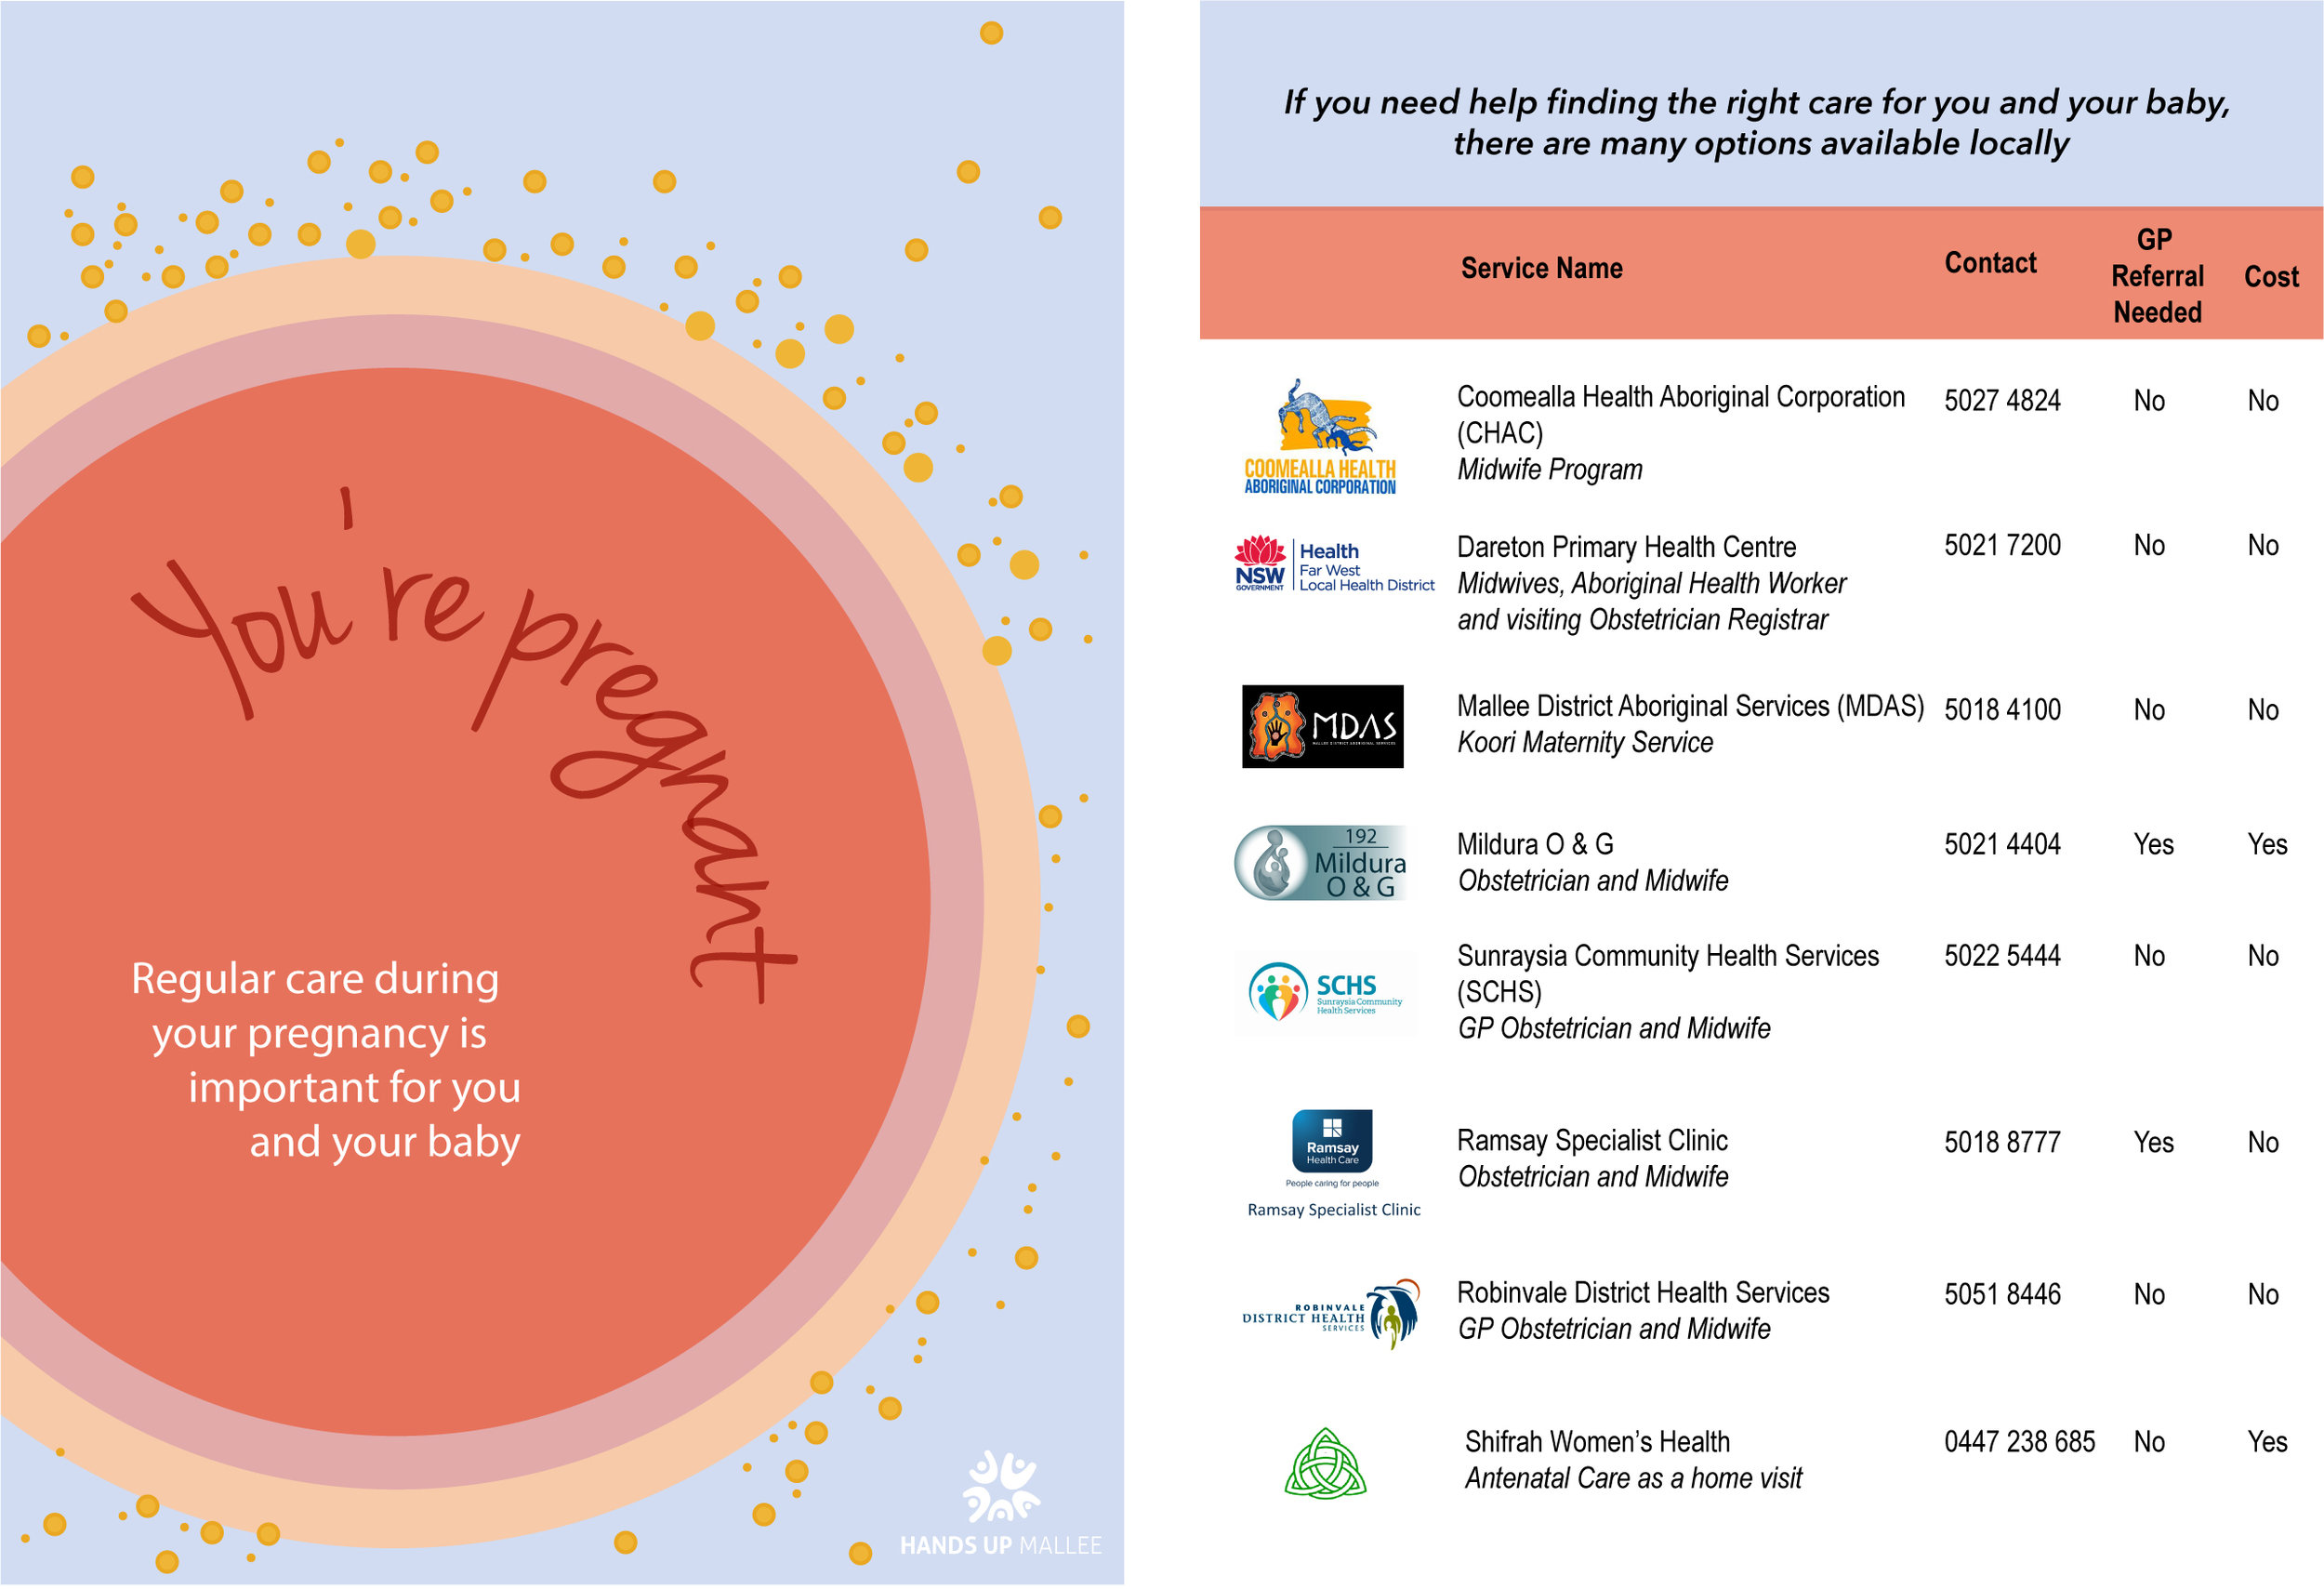 pregnancy care flyer - Want to know what pregnancy care options are available locally? Download our pregnancy care flyer